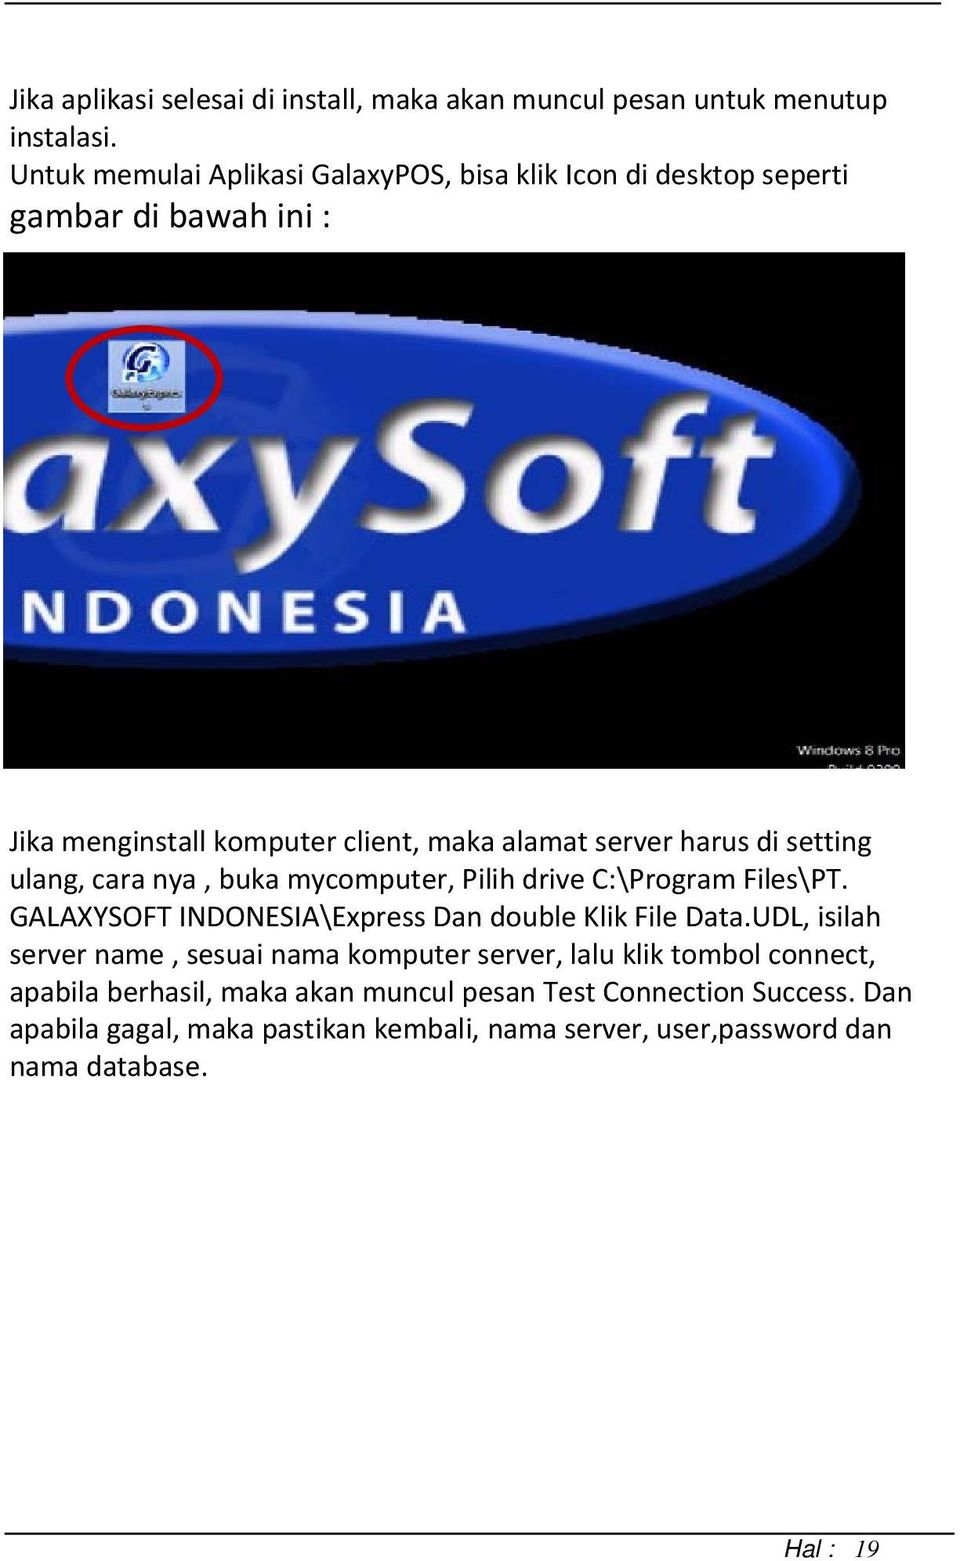 setting ulang, cara nya, buka mycomputer, Pilih drive C:\Program Files\PT. GALAXYSOFT INDONESIA\Express Dan double Klik File Data.